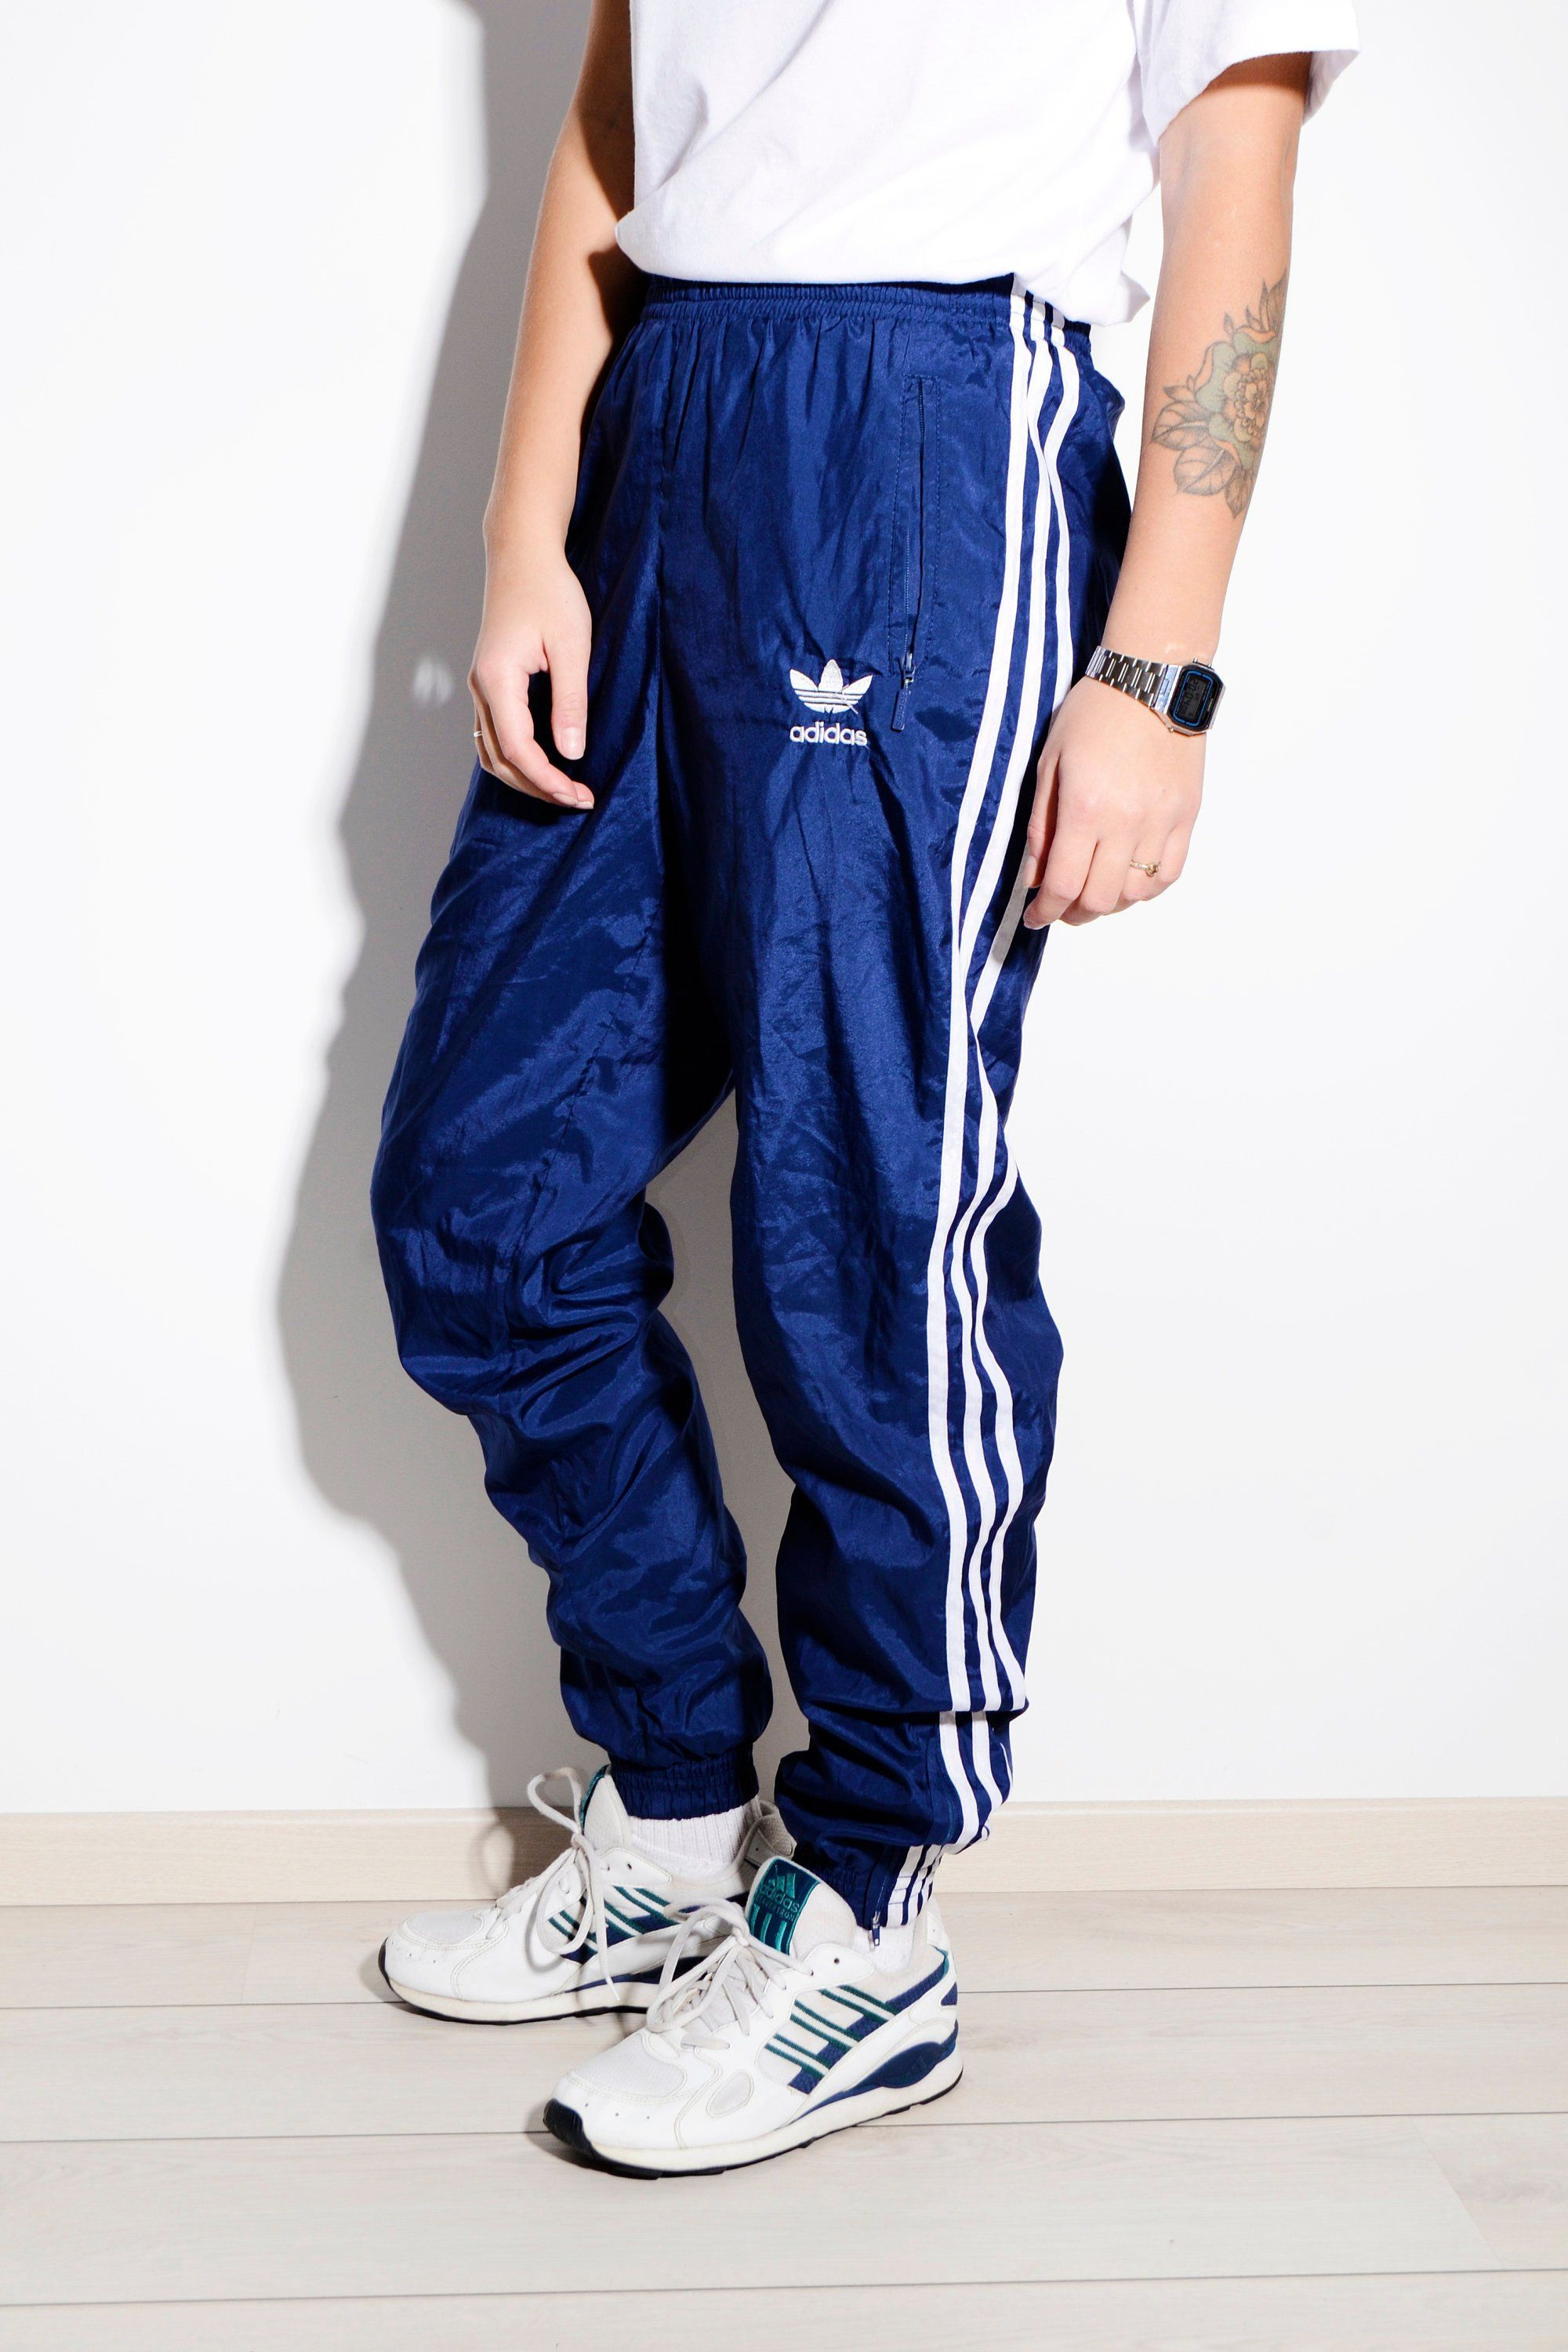 e9d41bac14a0 ADIDAS ORIGINALS vintage festival shell pant nylon in blue   Old school 90s  style women's track wind trousers   Size - Small